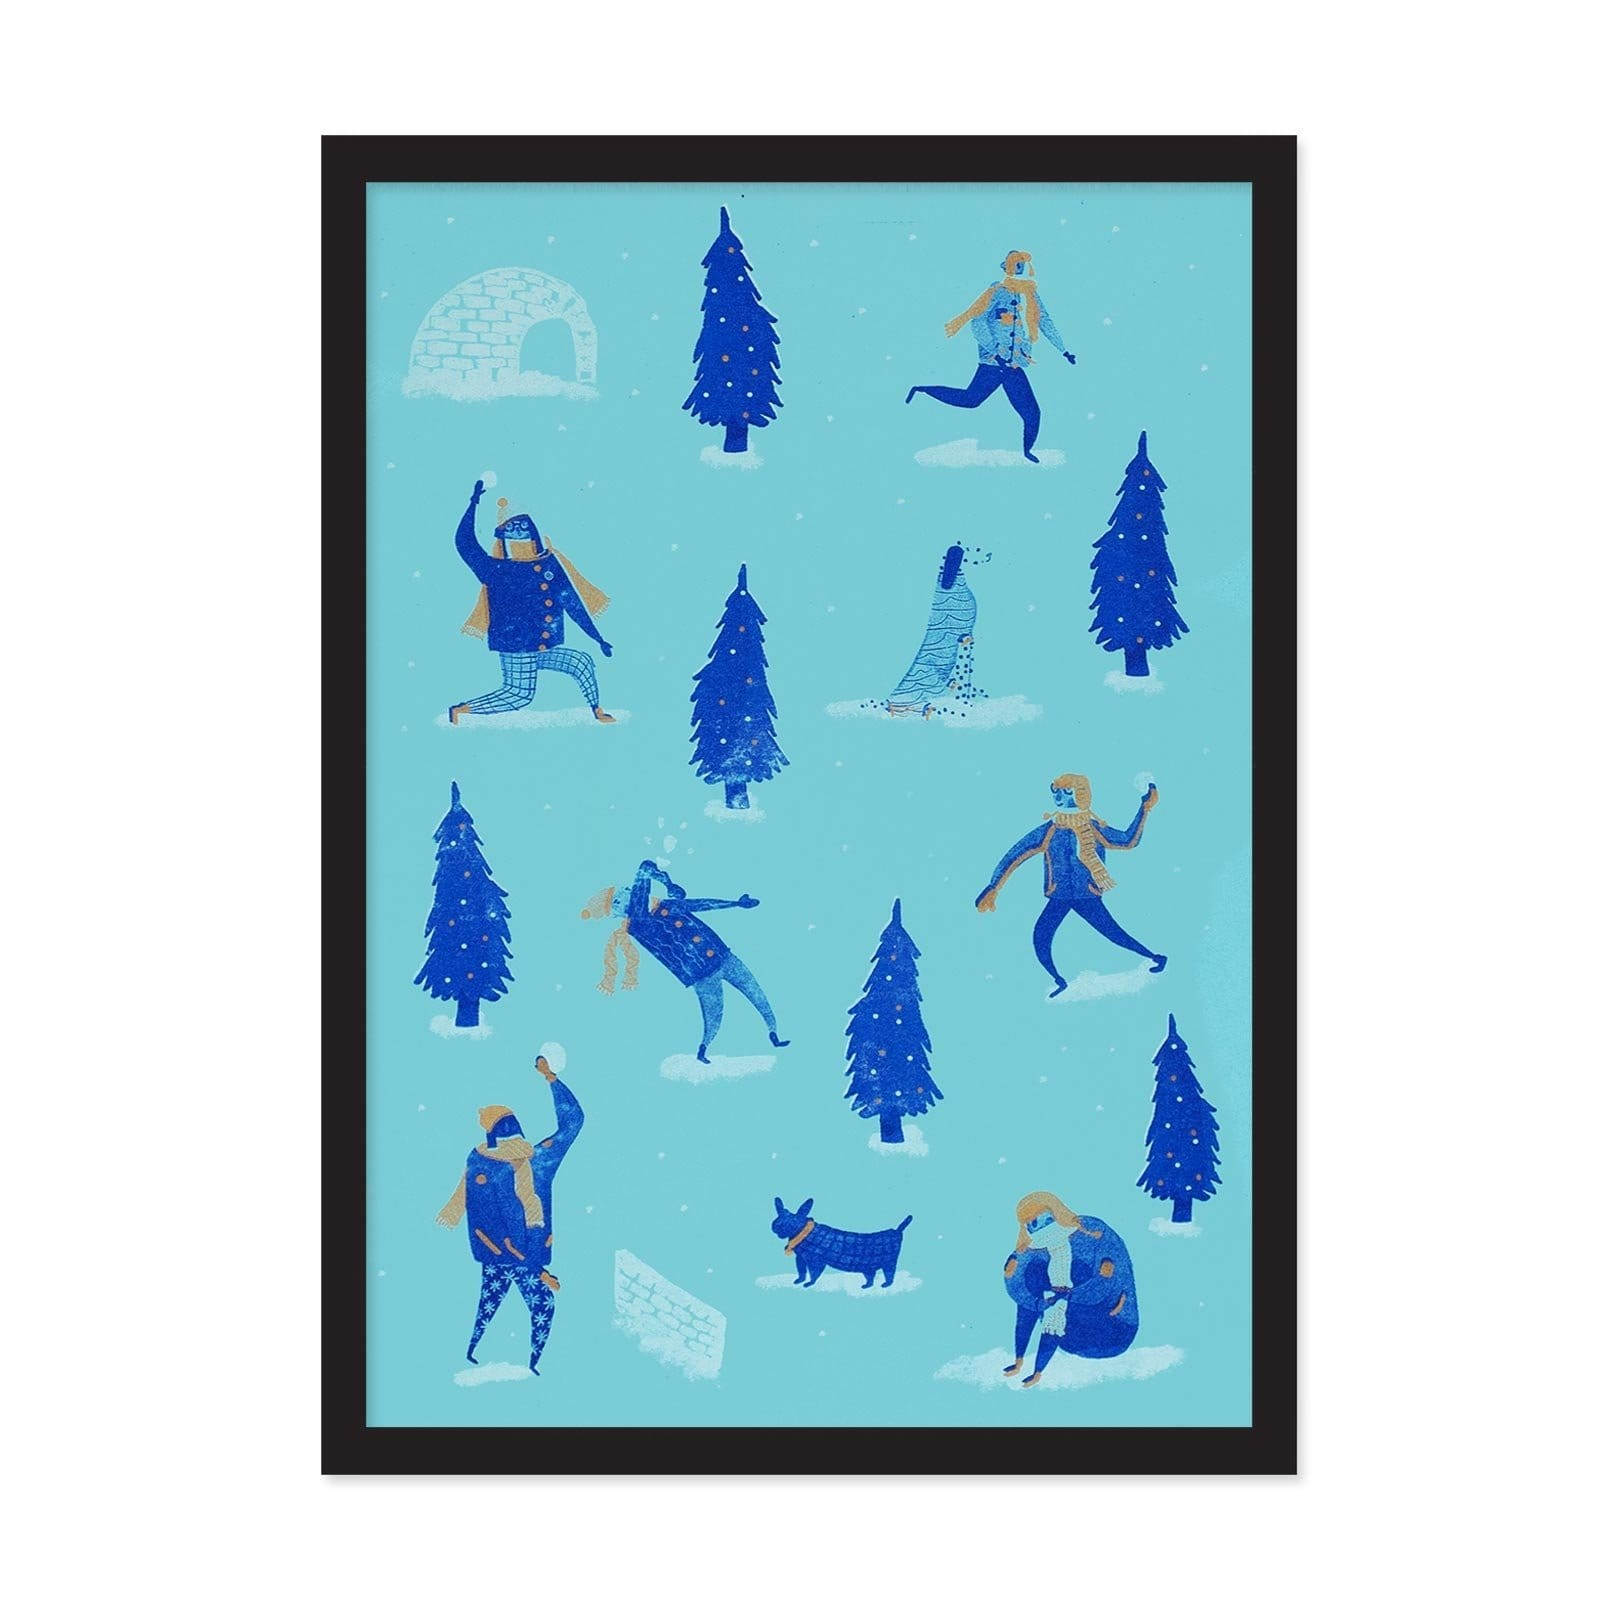 Blue art print with dark blue illustrated Christmas trees and people throwing snowballs